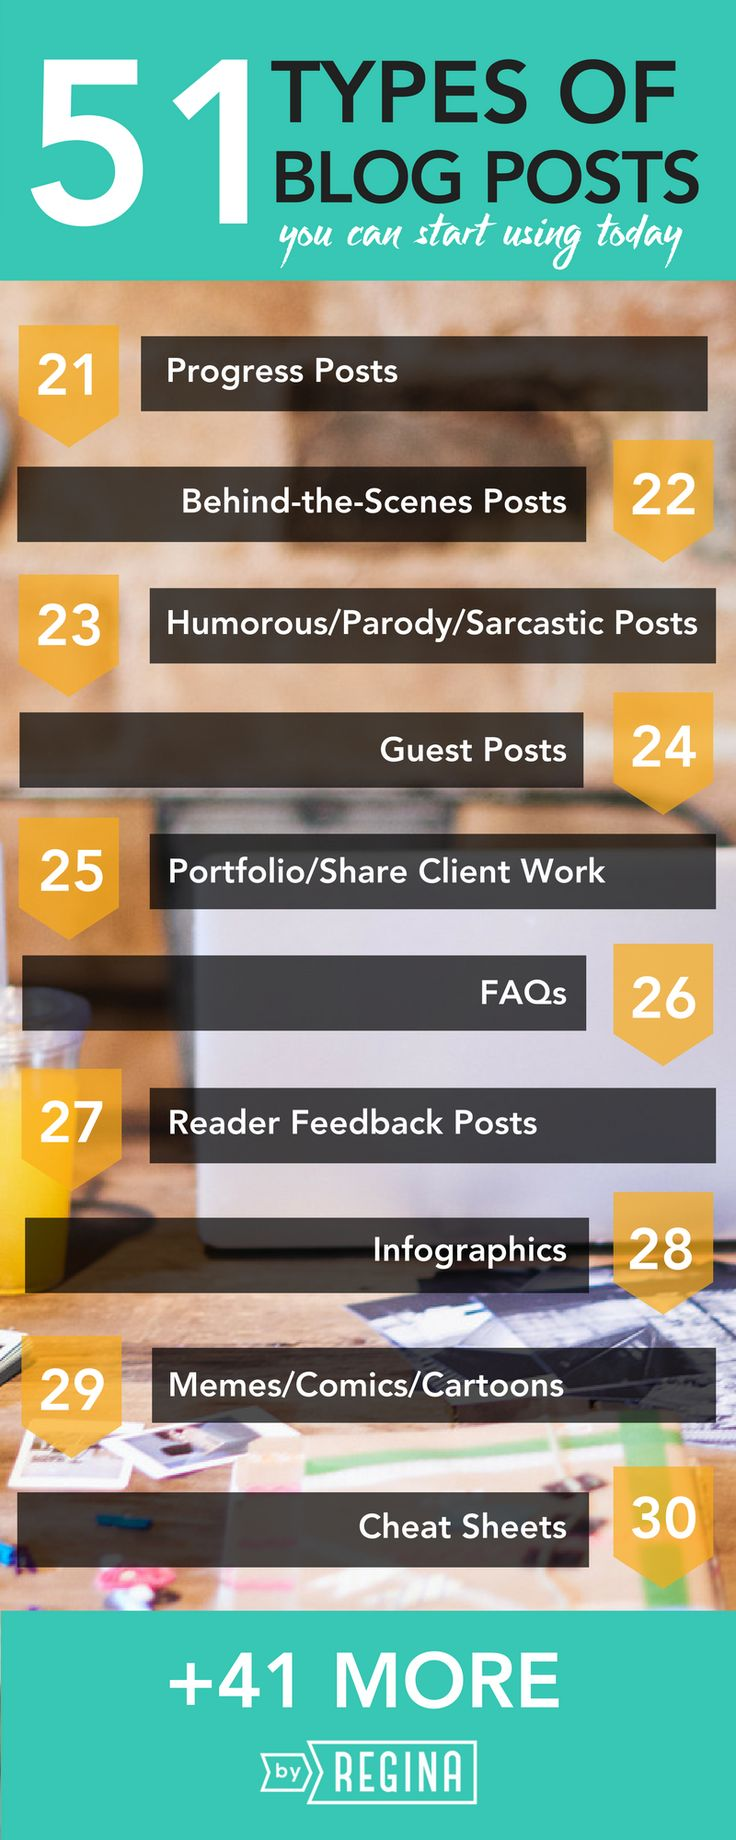 51 types of blog posts for #infopreneurs to give a try.